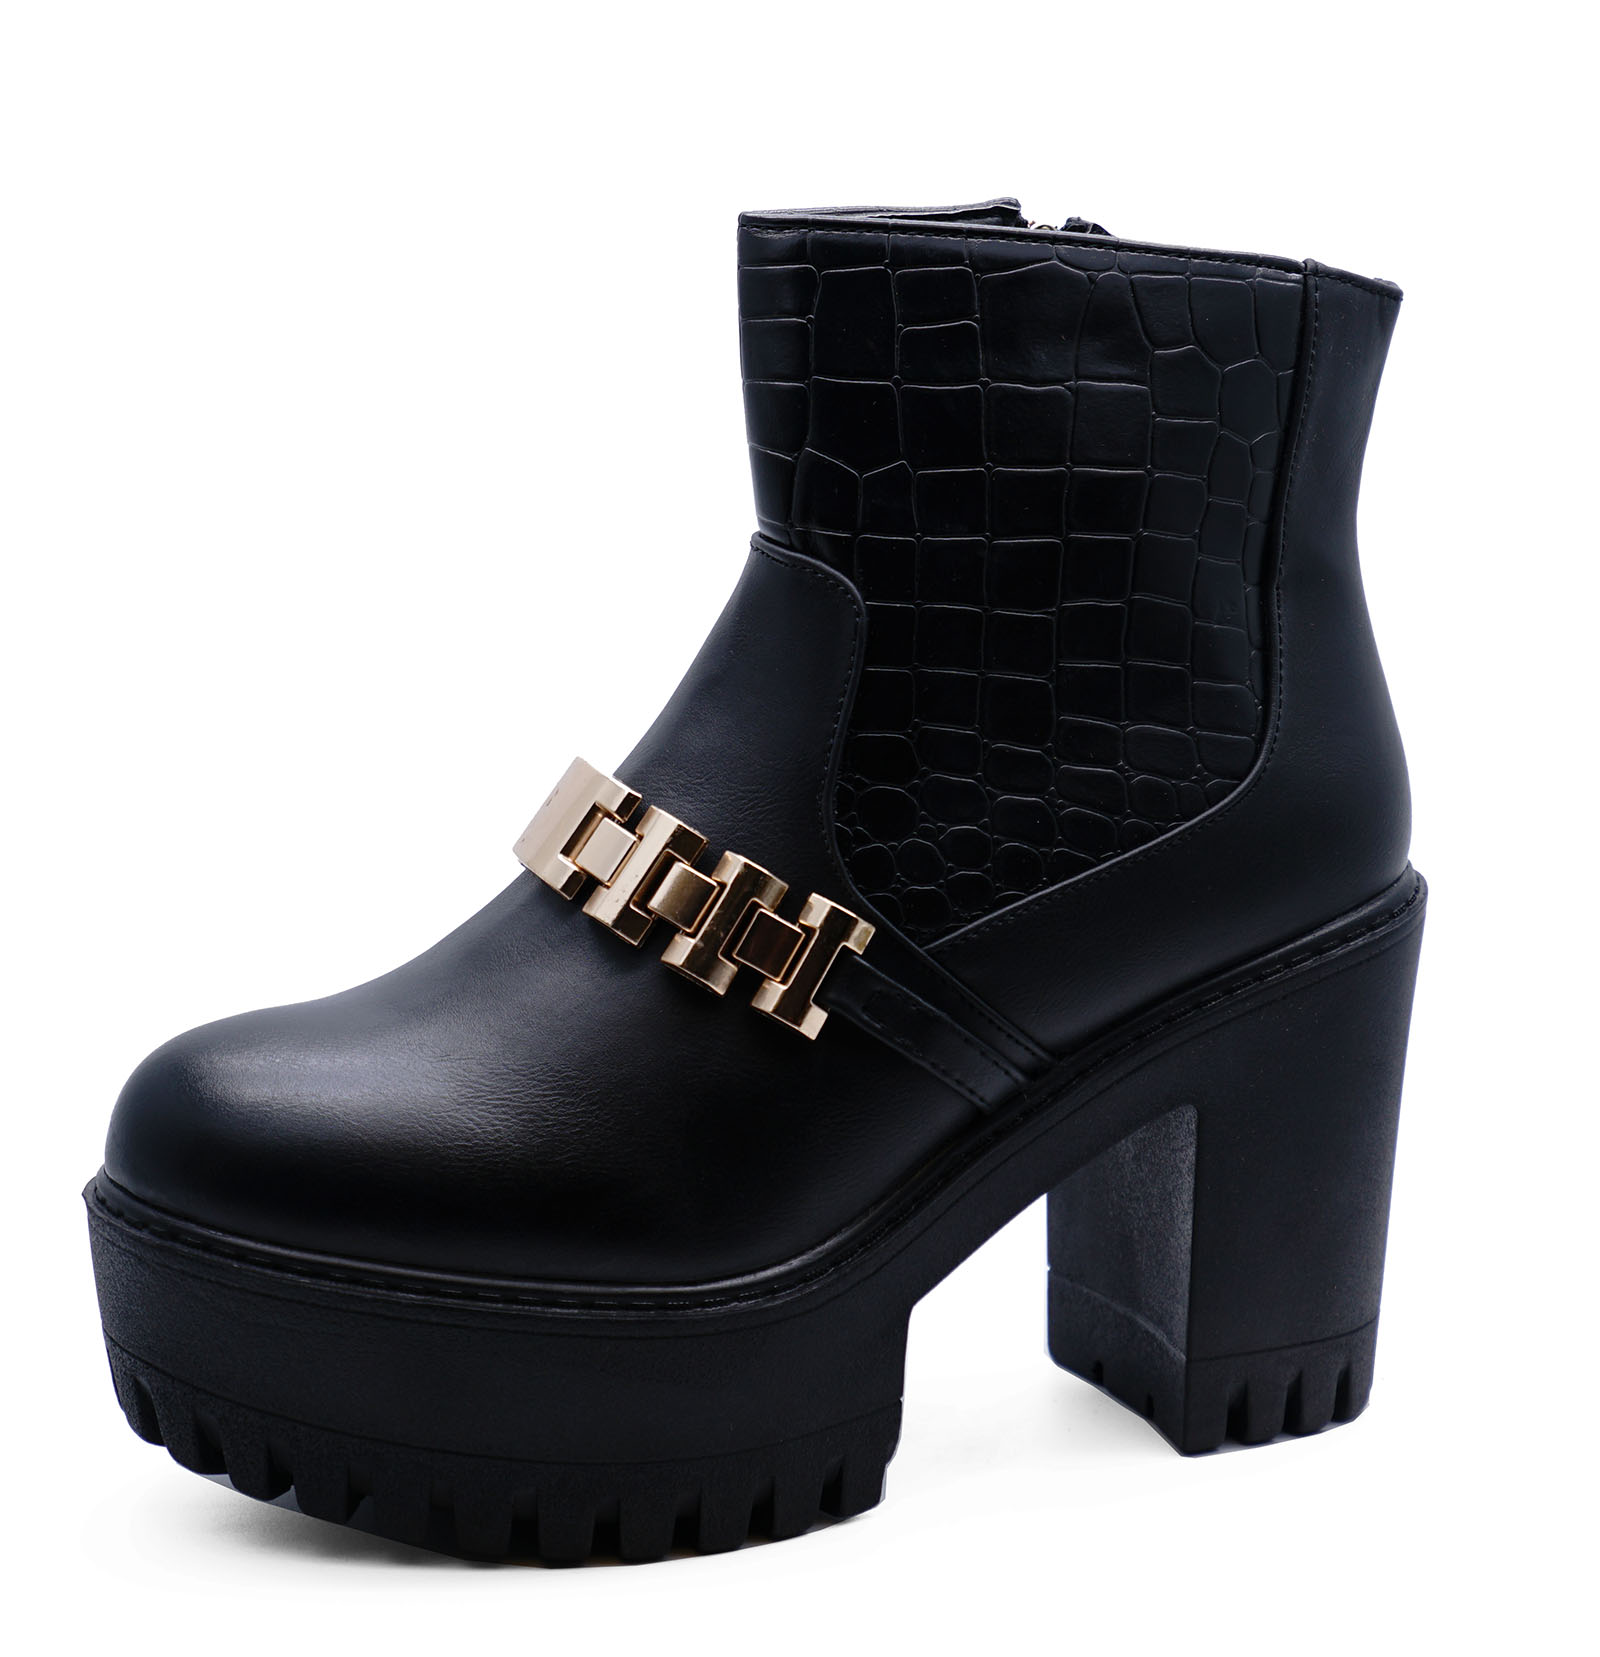 0a4a2ebcfbb998 LADIES BLACK CHUNKY ZIP-UP ANKLE BIKER CALF PLATFORM LACE-UP BOOTS ...